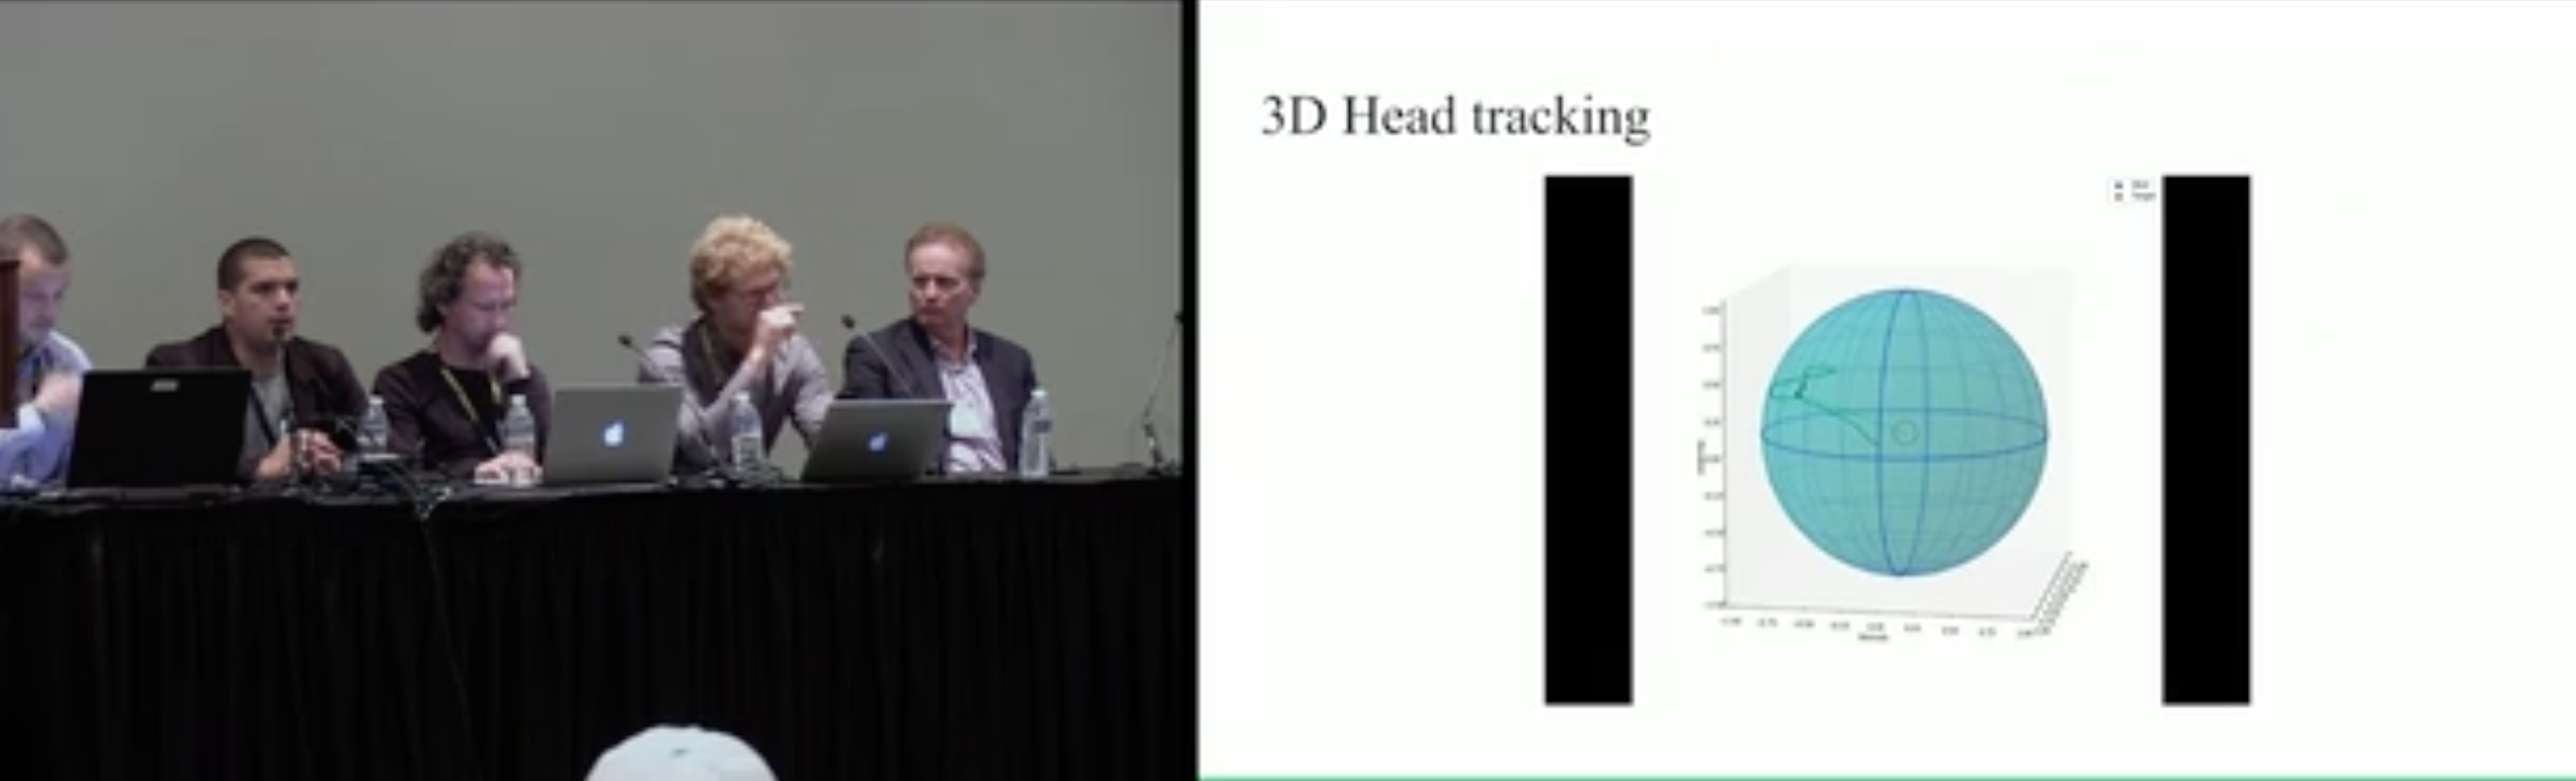 VR Analytics Developed from Perceptual Audio Research to Improve Tools and Processes for Developers